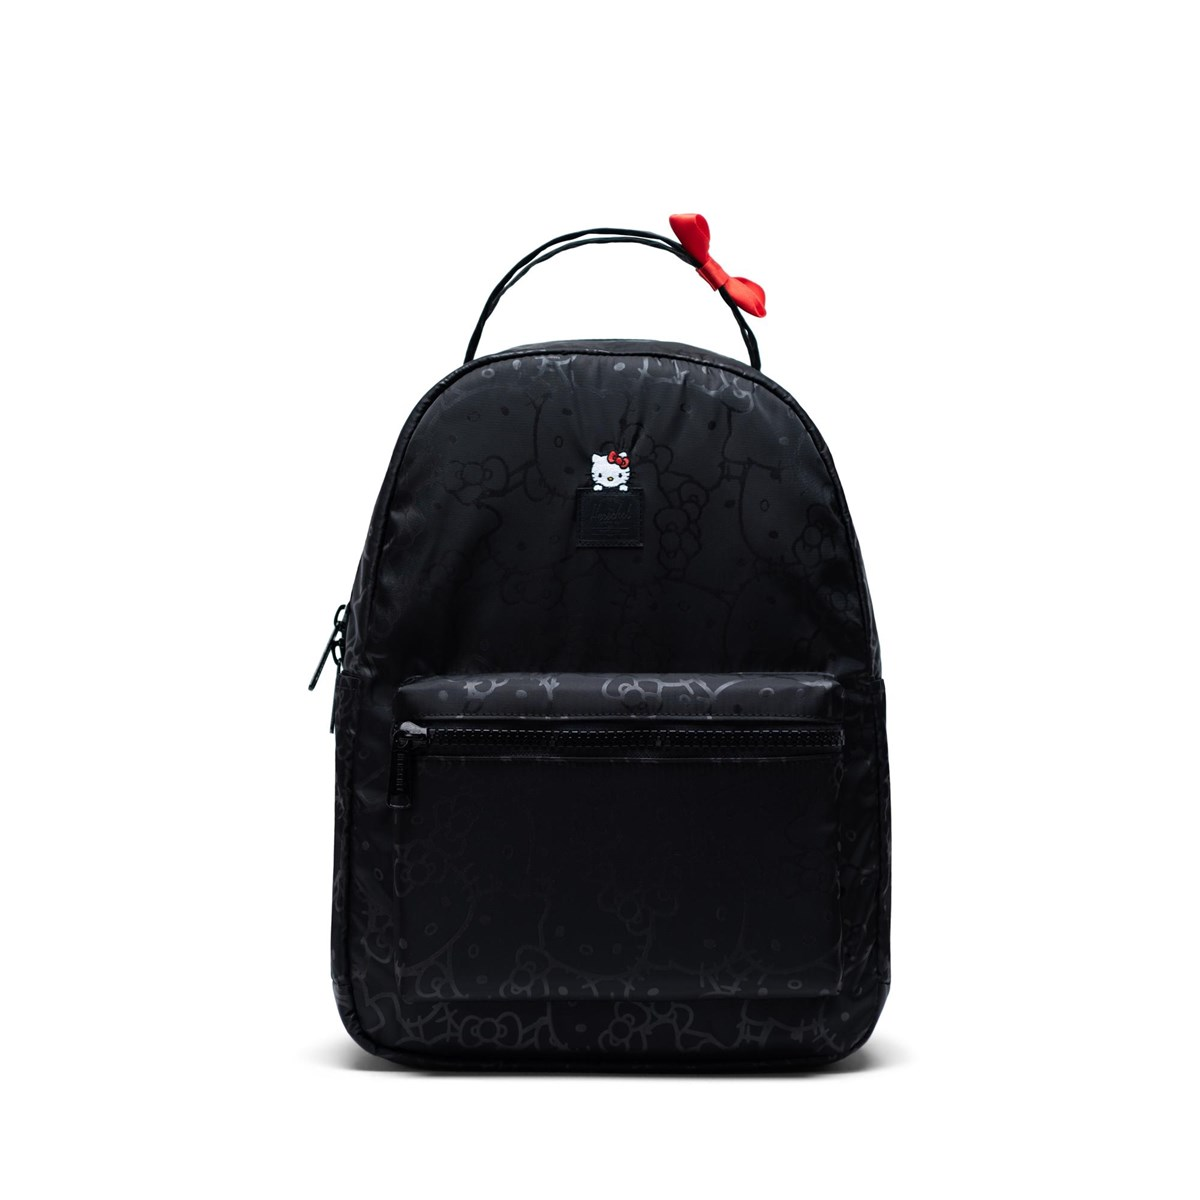 Nova Mid-Volume Hello Kitty Backpack in Black